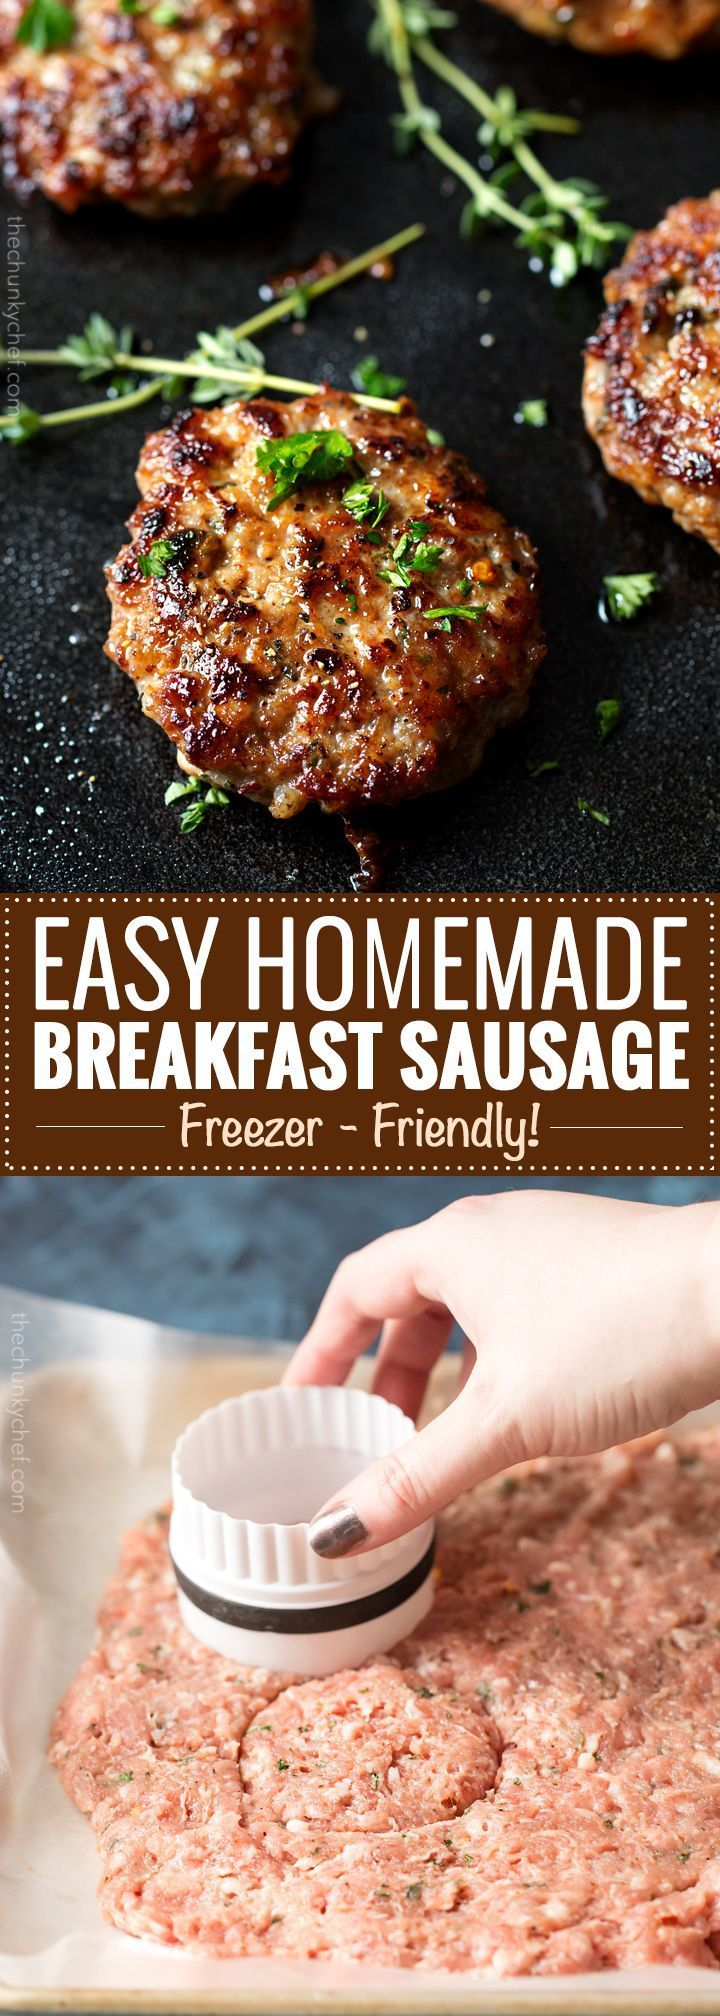 Homemade Maple Breakfast Sausage | These breakfast sausage patties are made with a combo of ground turkey and pork, savory herbs, and sweet maple syrup. The mouthwatering combo gives way to a low calorie homemade version of your favorite breakfast food! |